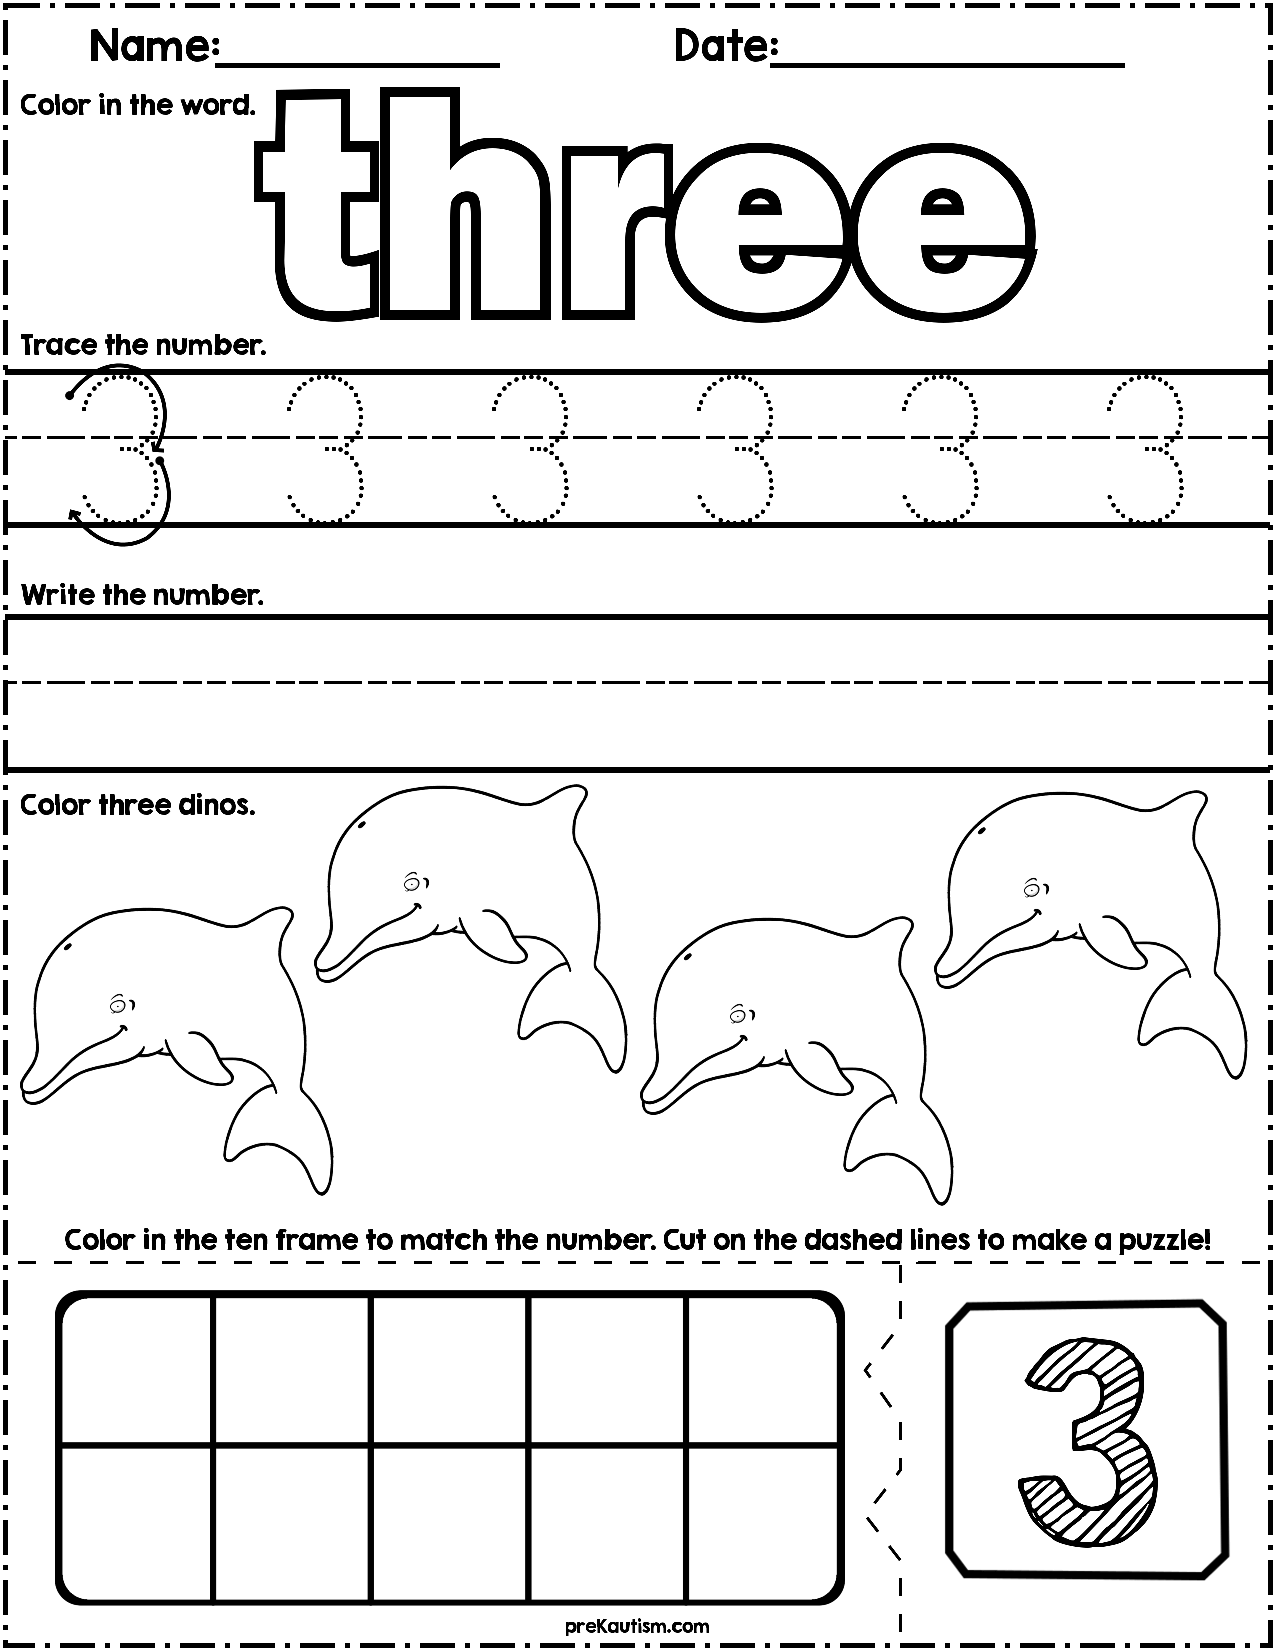 1 50 Learn How To Count And Write Numbers 1 10 With These Ocean Animal Themed Printable Activi Numbers Preschool Numbers Kindergarten Elementary Activities [ 1650 x 1275 Pixel ]